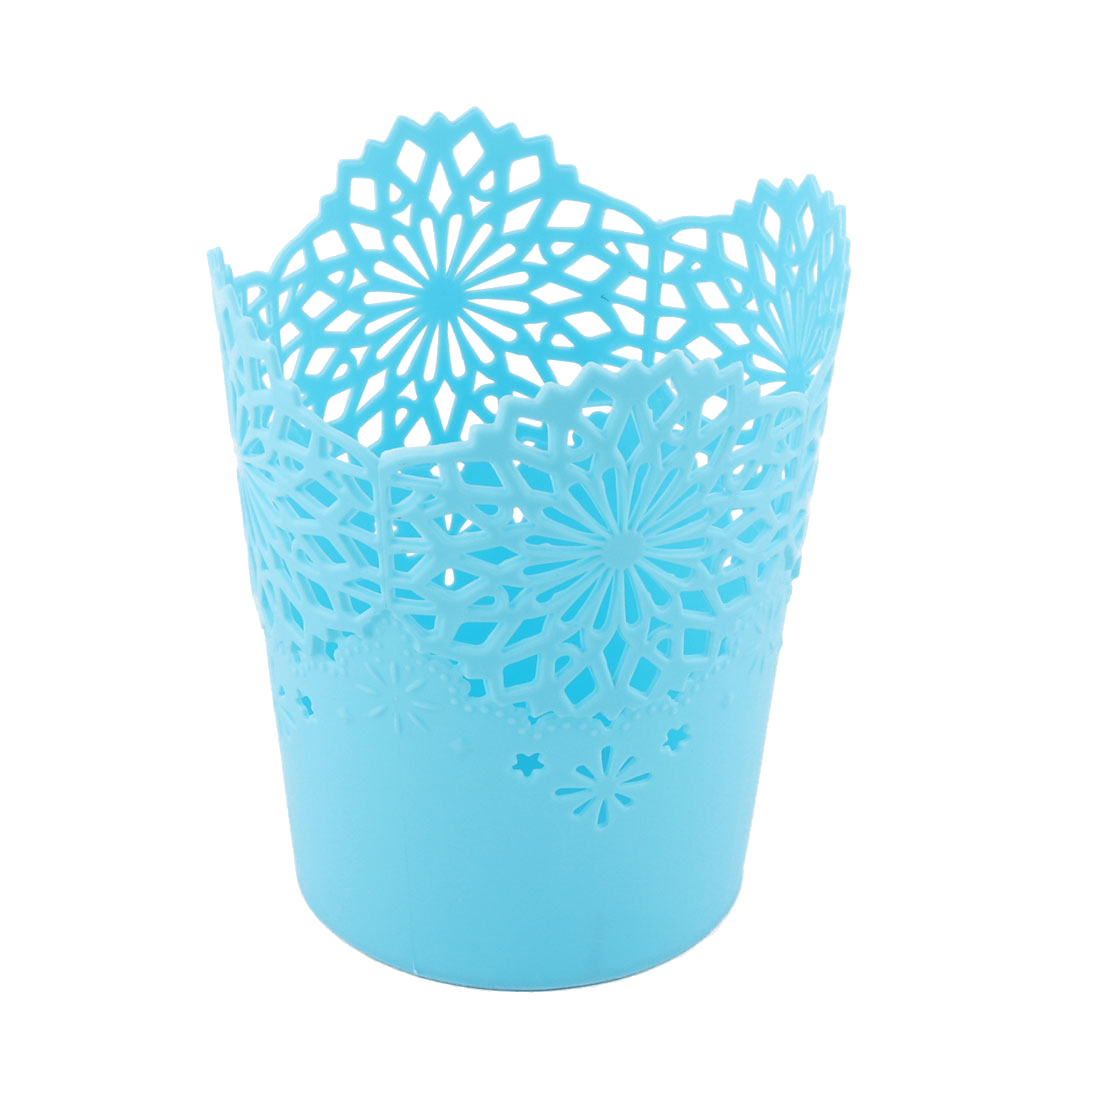 Home Office Hollow Out Seedcase Waste Paper Trash Bin Garbage Can Blue